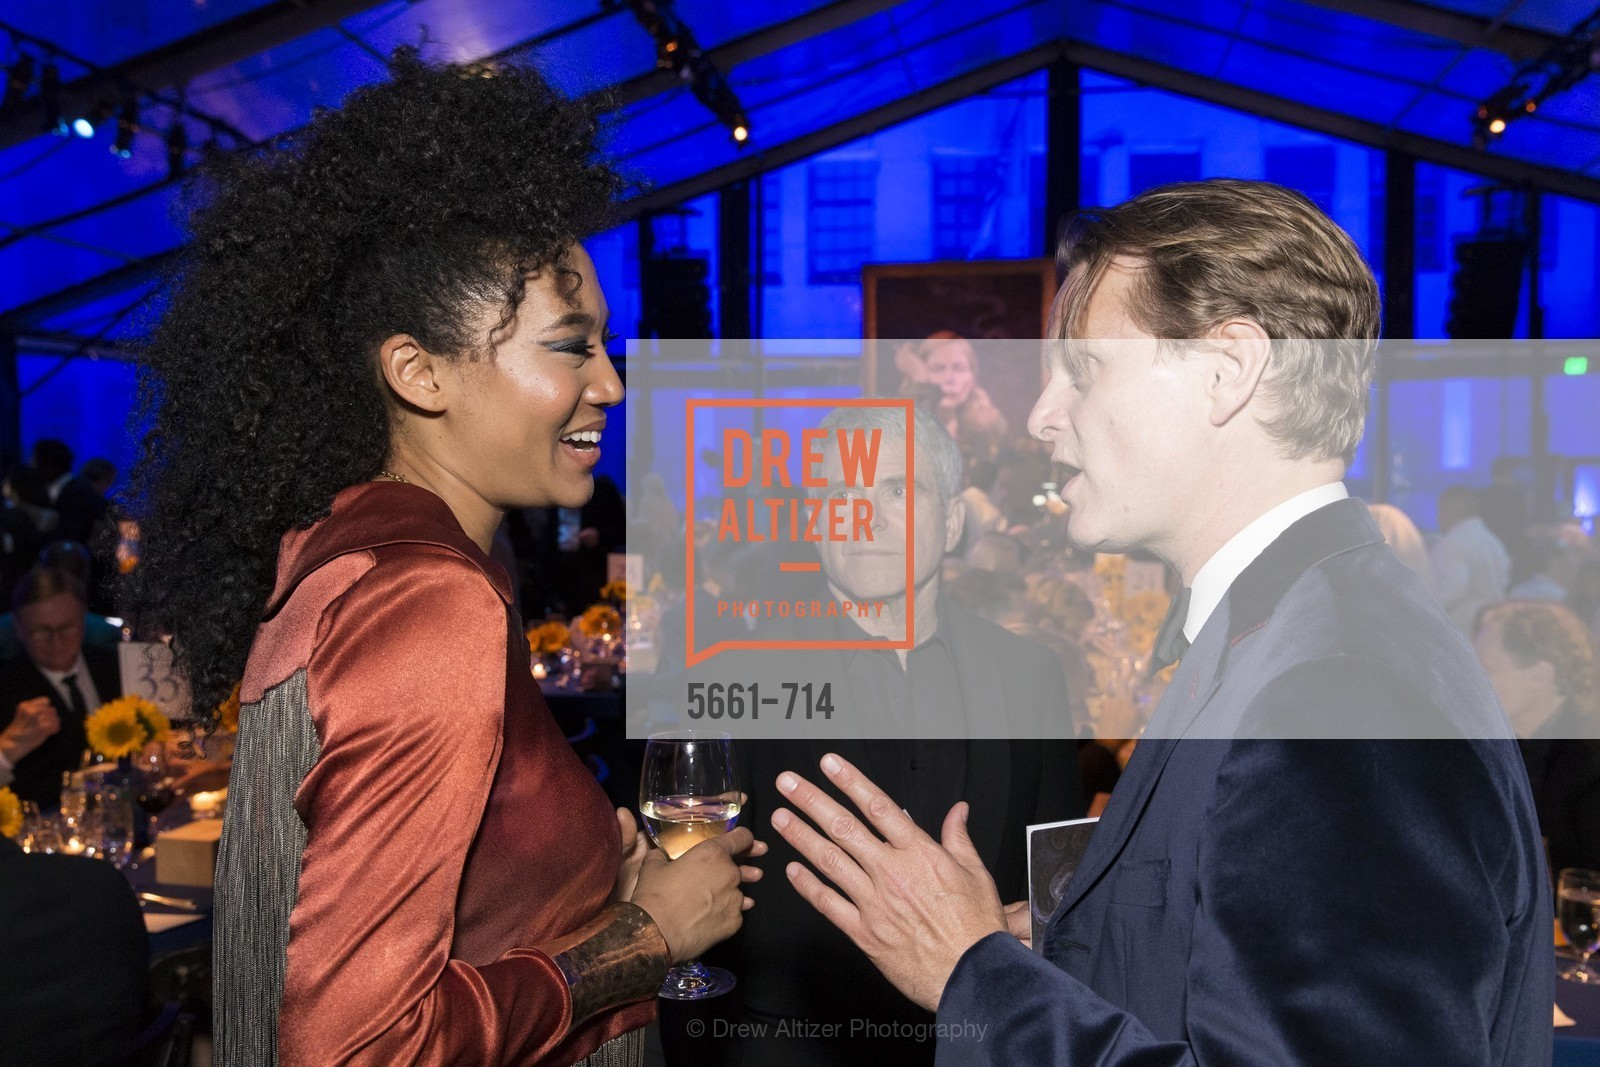 Judith Hill, Joshua Robison, Owsley Brown, SFJAZZ Gala 2015 Honors Joni Mitchell with Lifetime Achievement Award, US, May 9th, 2015,Drew Altizer, Drew Altizer Photography, full-service agency, private events, San Francisco photographer, photographer california